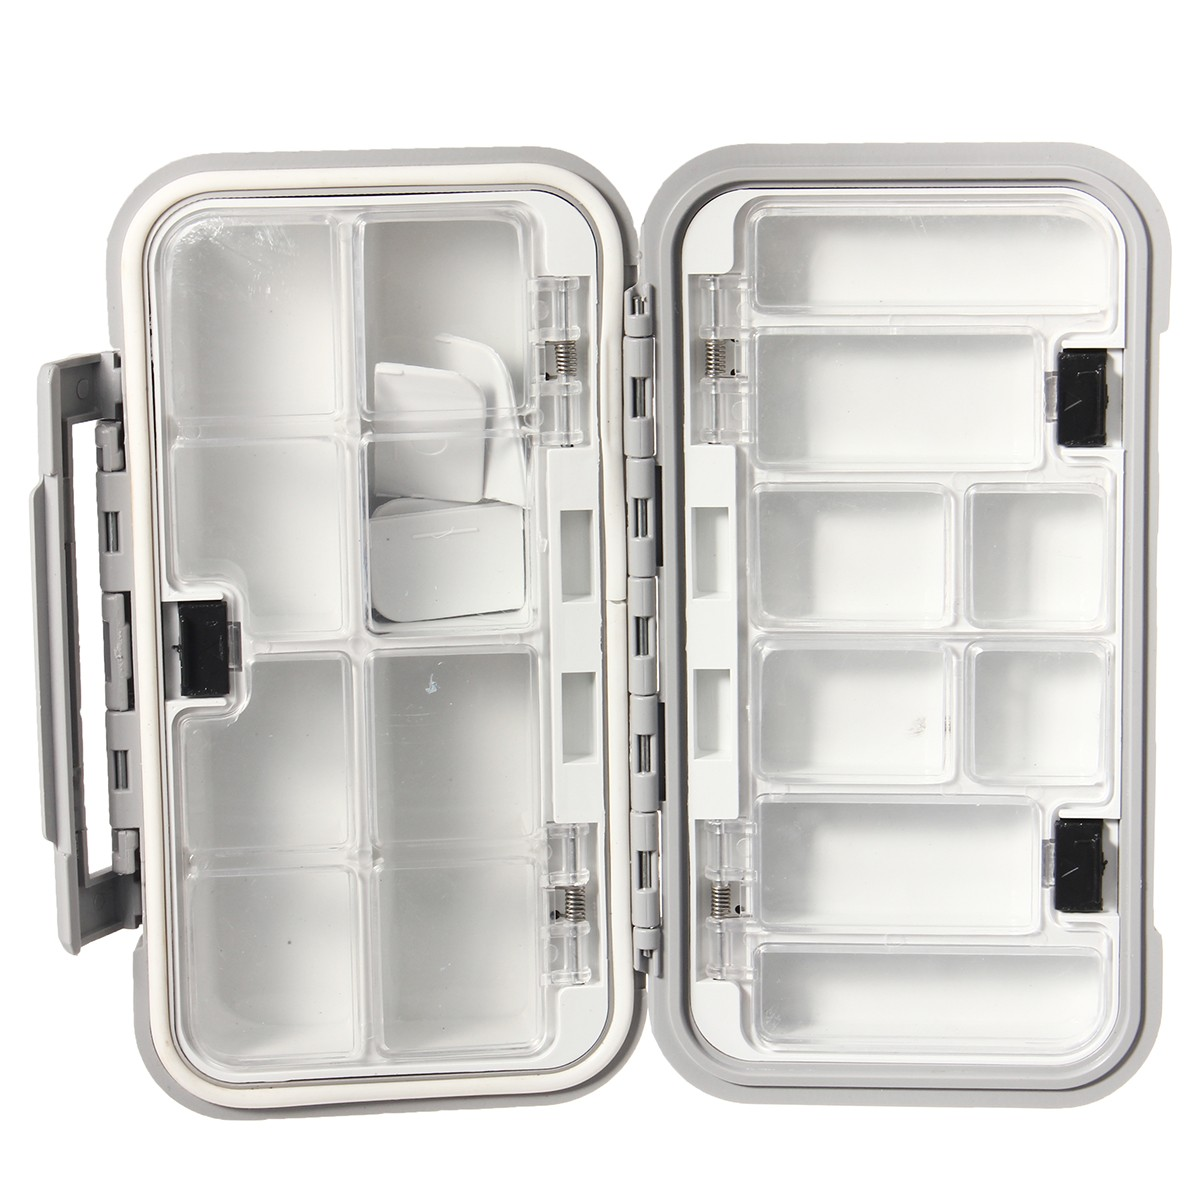 ZANLURE Fishing Storage Box Lure Hook Bait Tackle Waterproof Case with 16 Compartment